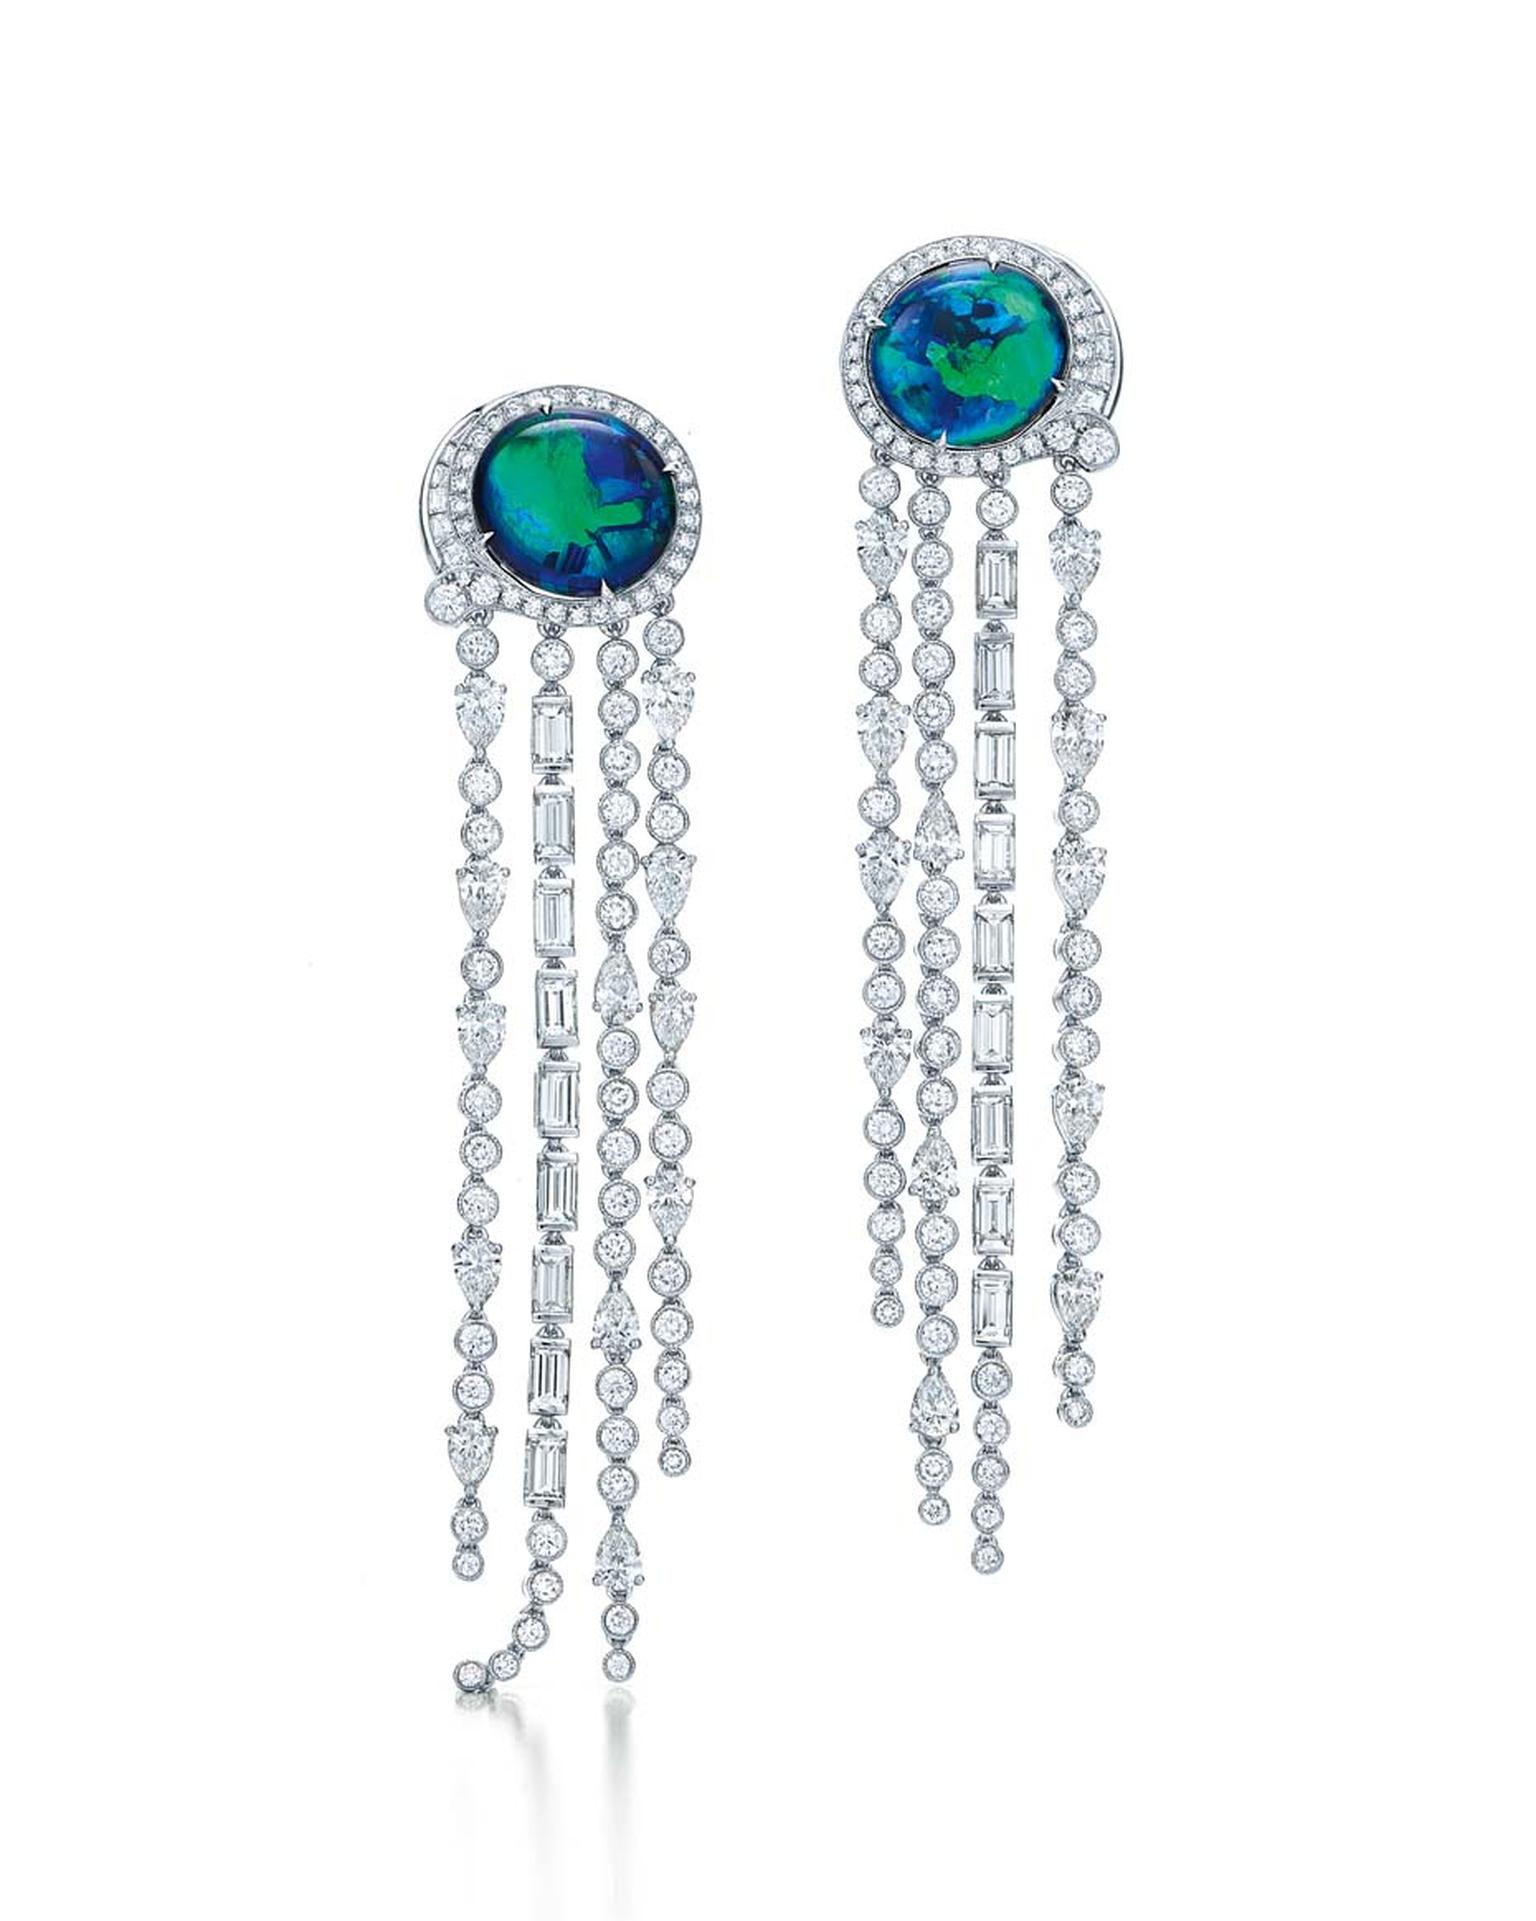 Tiffany earrings from the 2015 Blue Book collection set with 8.87ct black opals and mixed-cut diamonds in platinum.